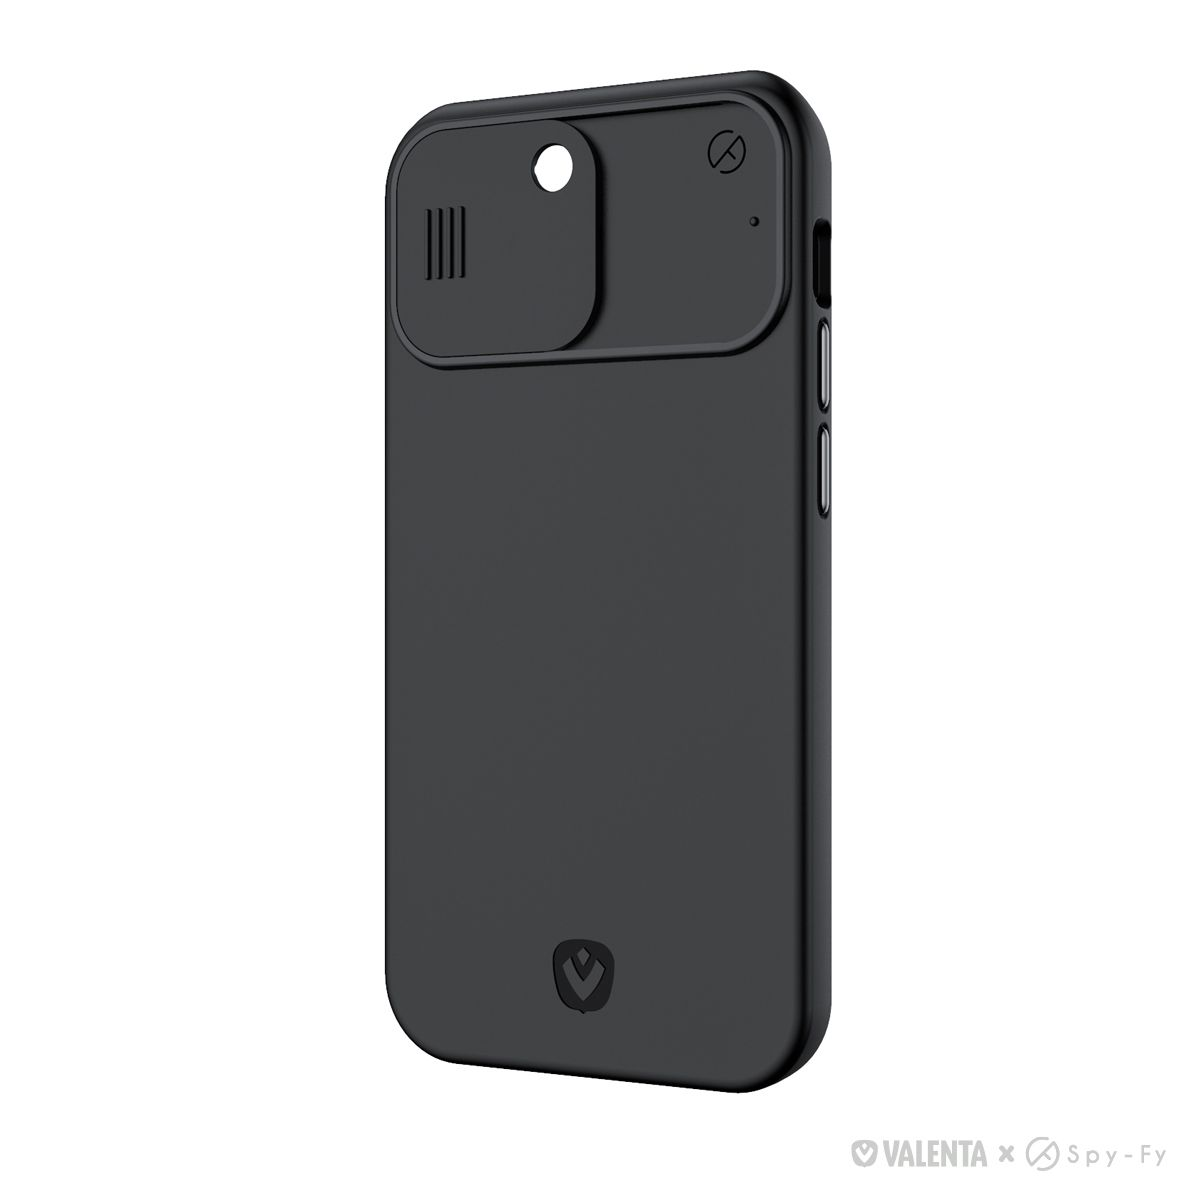 valenta x spyfy privacy cover black iphone 12 pro with camera covers front rear